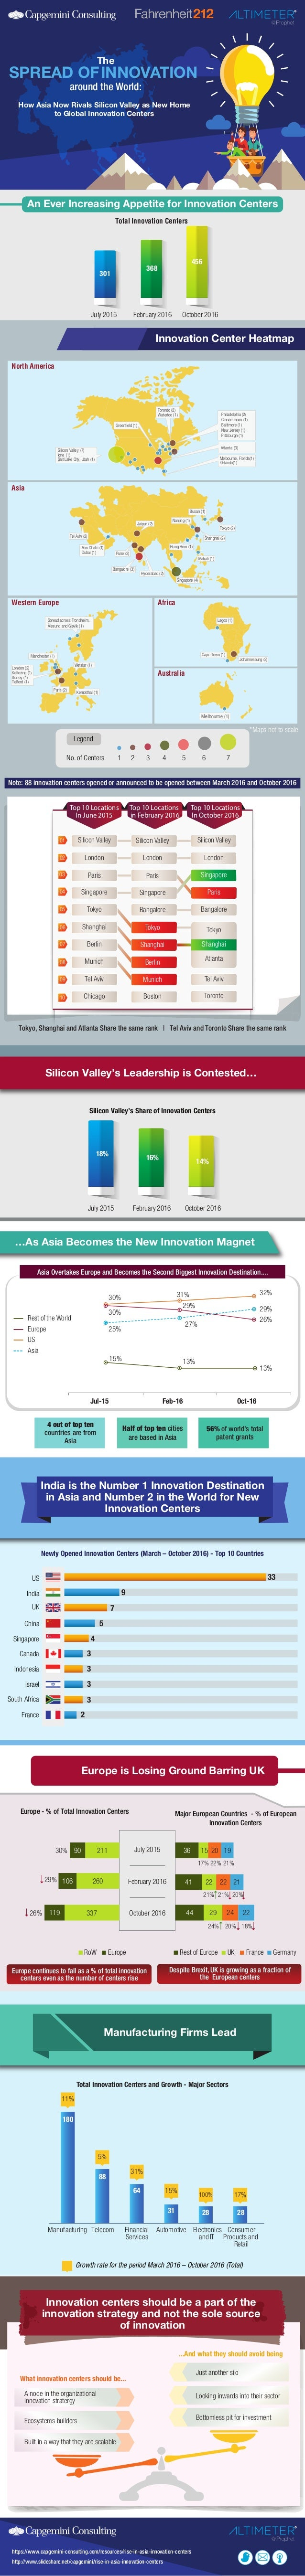 The SPREAD OFINNOVATION An Ever Increasing Appetite for Innovation Centers Note: 88 innovation centers opened or announced...